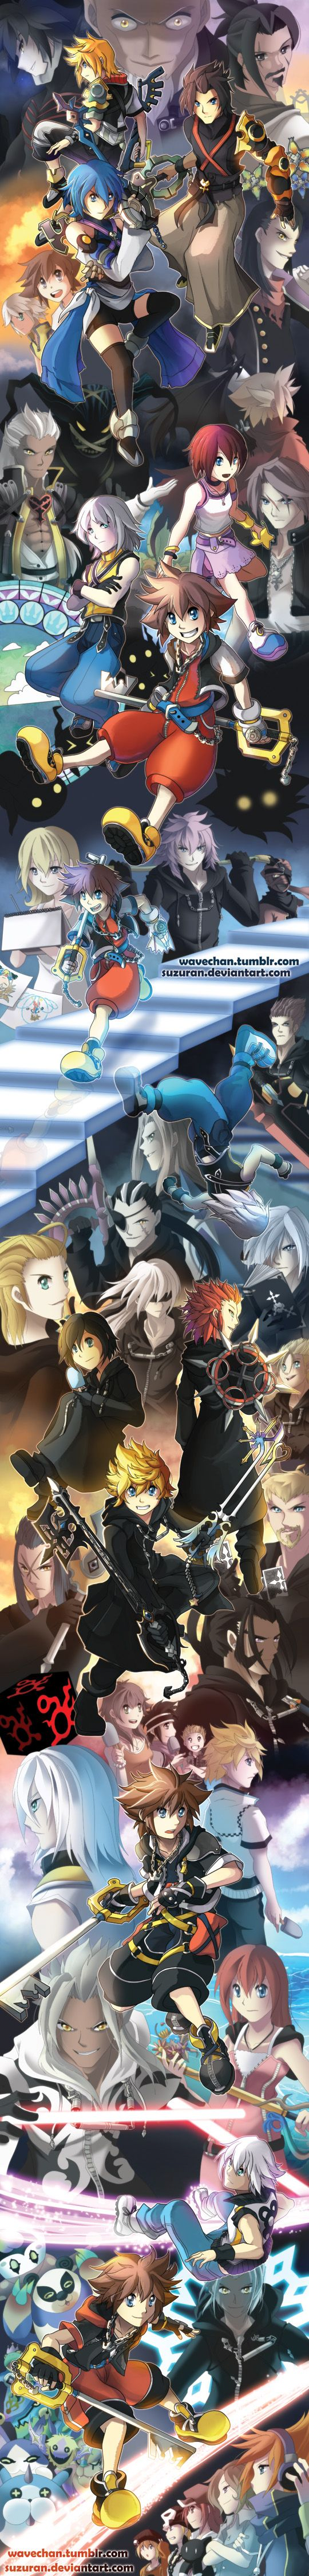 SUPER LONG Kingdom Hearts tribute by suzuran.deviantart.com on @DeviantArt